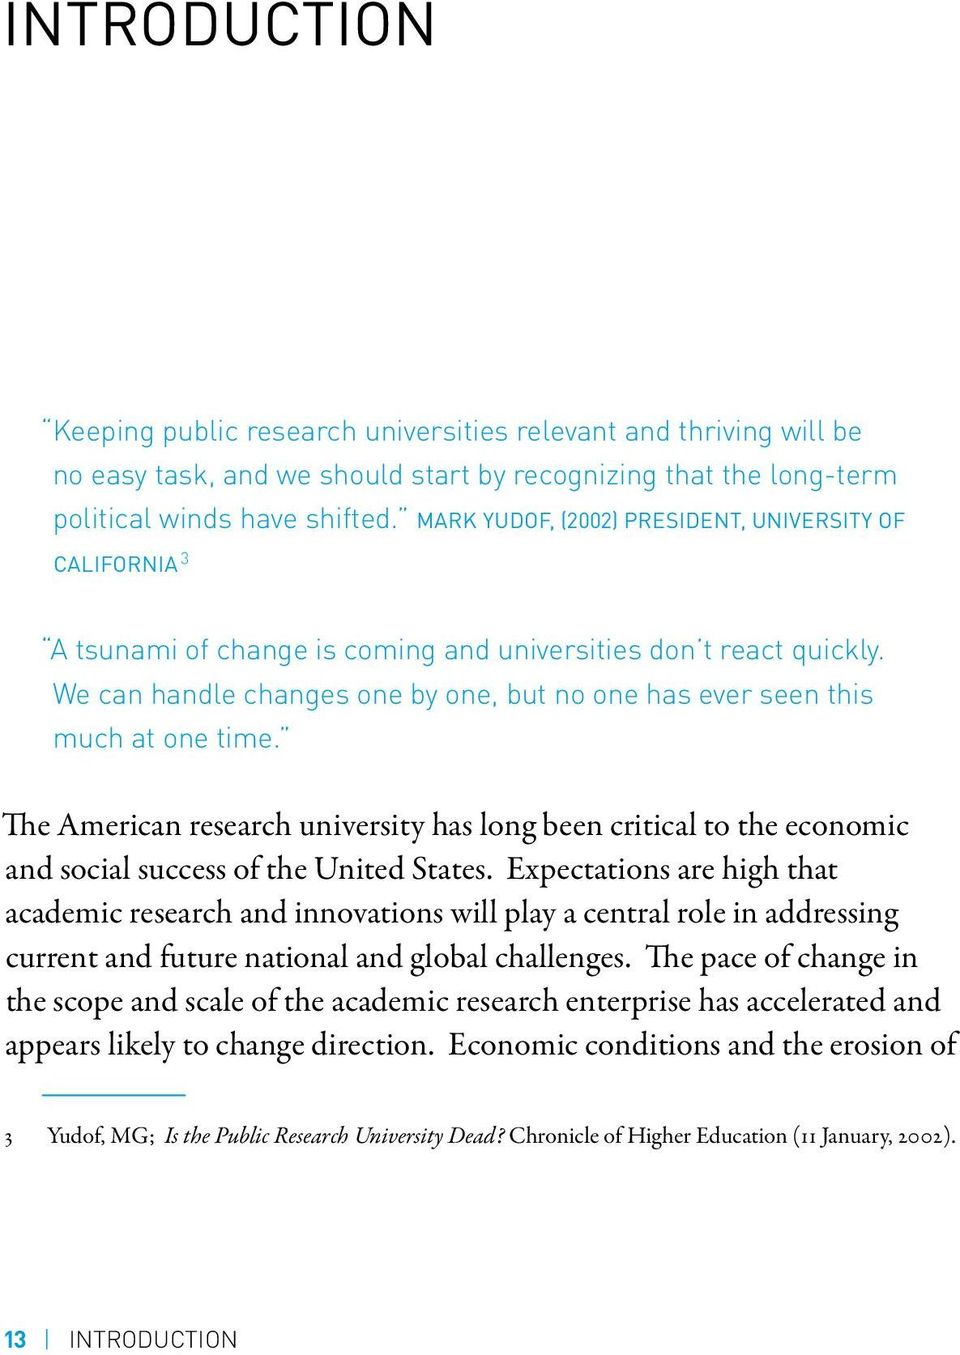 We can handle changes one by one, but no one has ever seen this much at one time. The American research university has long been critical to the economic and social success of the United States.